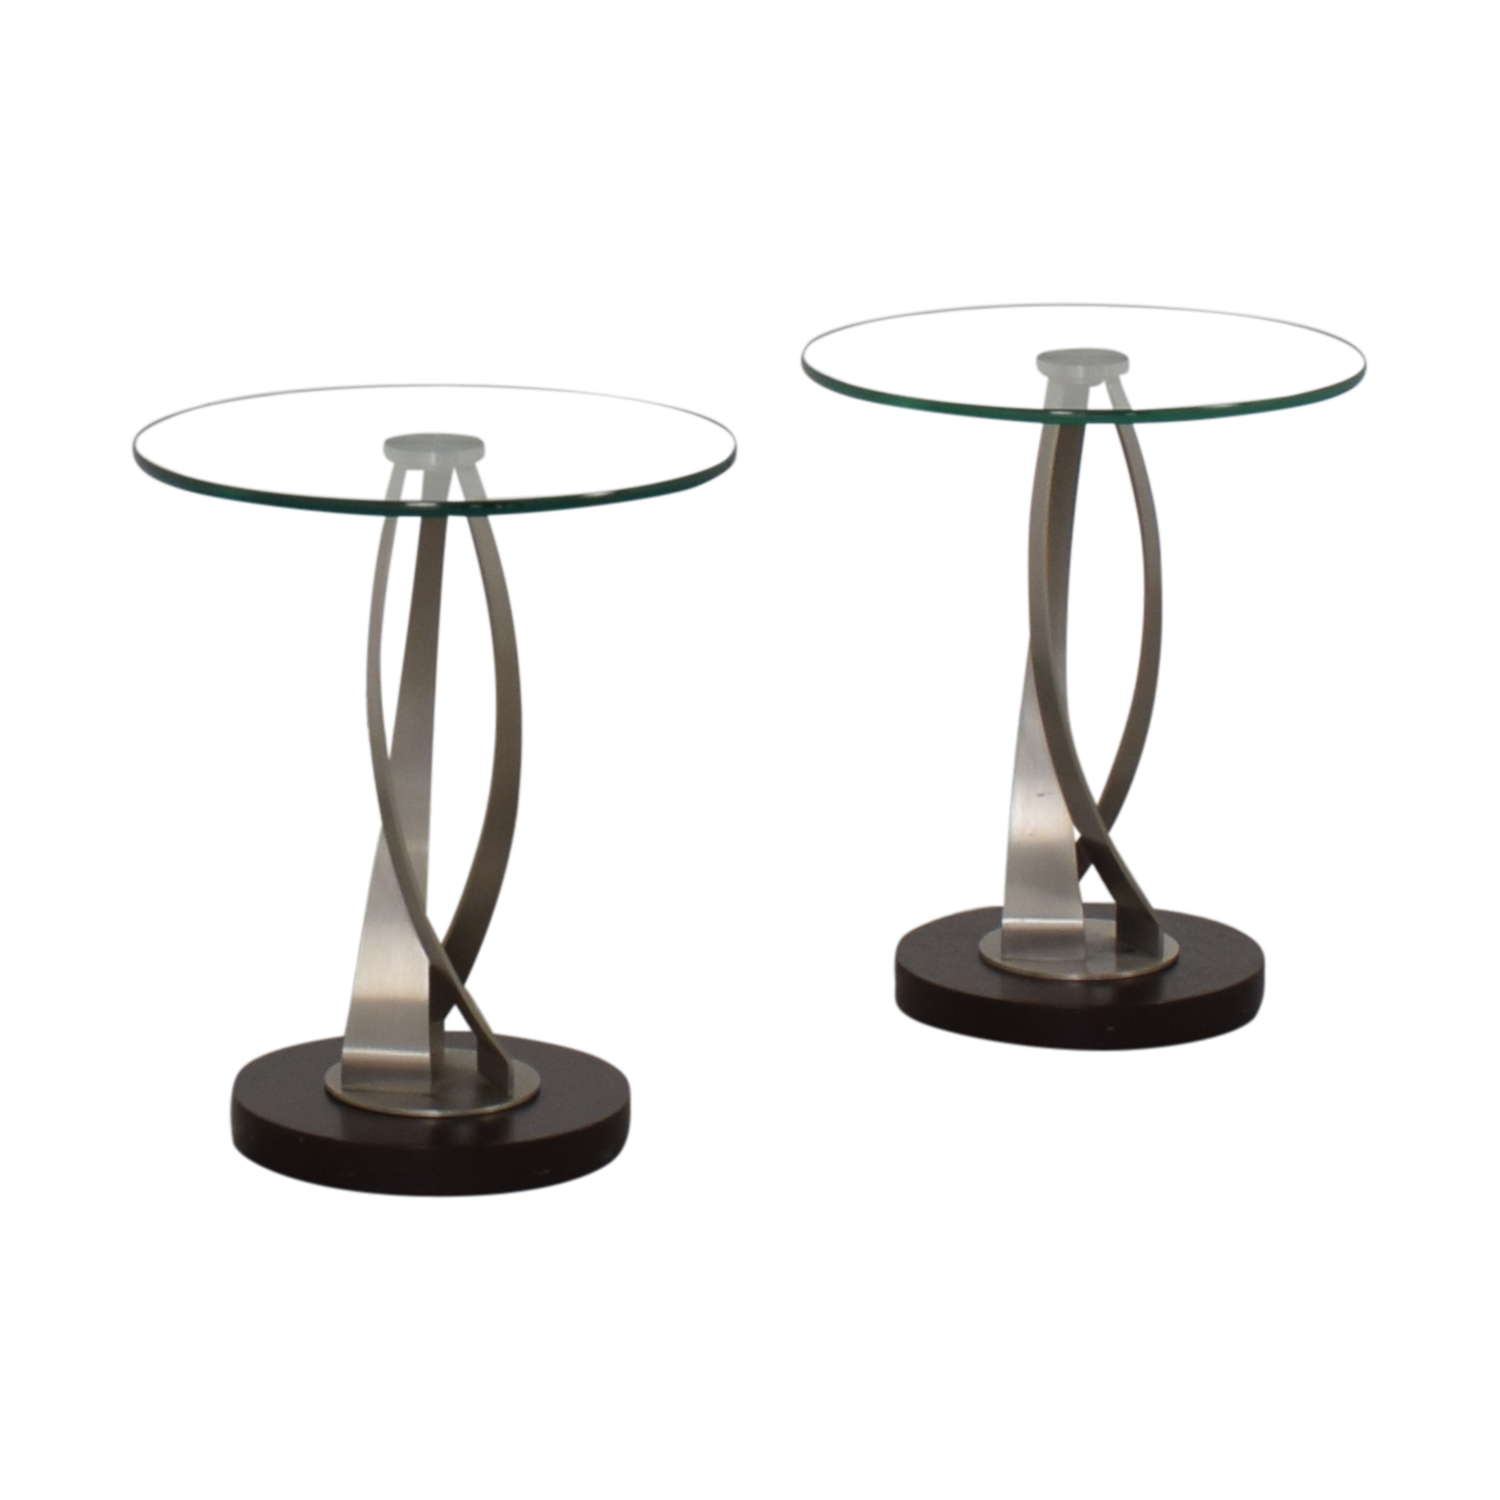 Pier 1 Pier 1 Round Glass Side Tables for sale